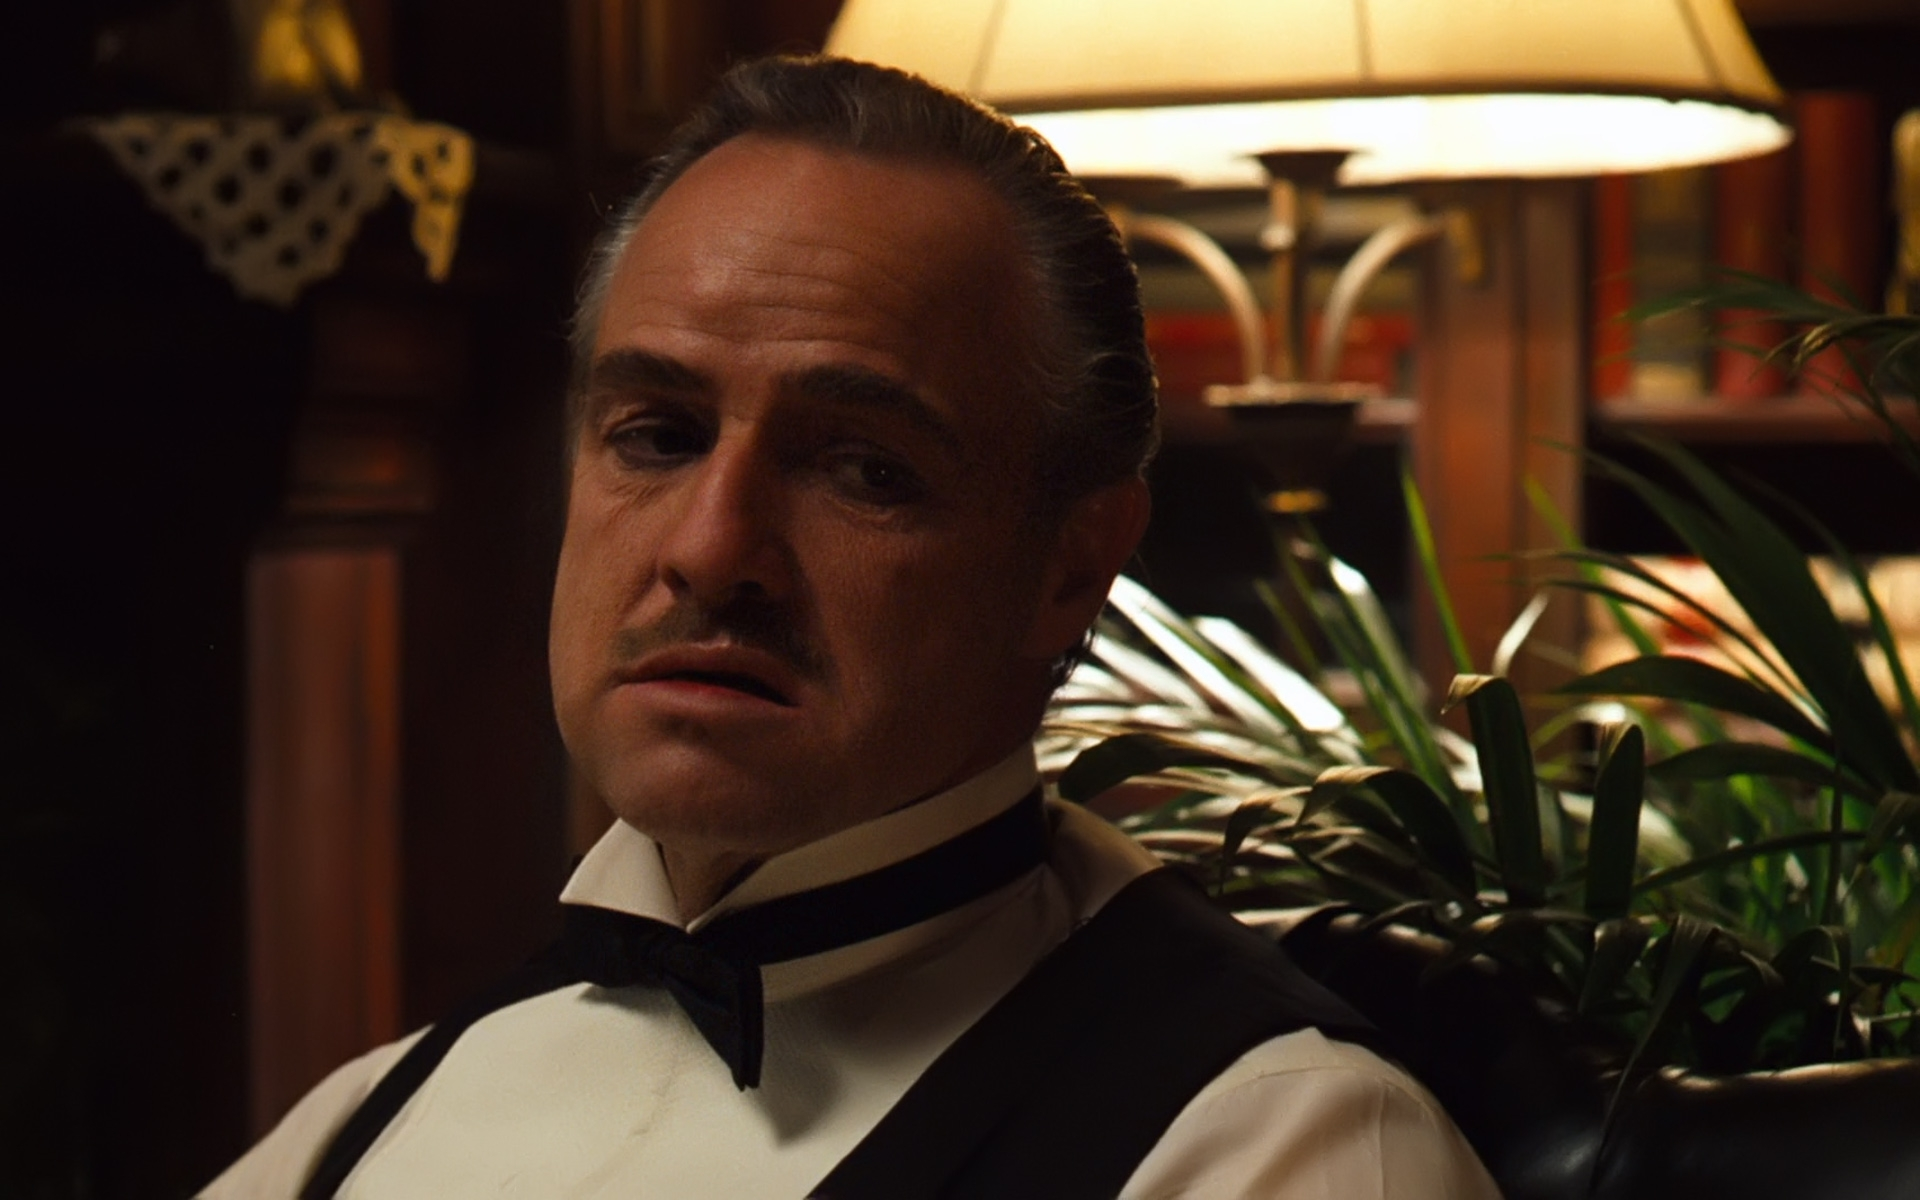 don vito corleone 1920x1200 wallpaper 1632 Movie HD Wallpaper Pc 1920x1200